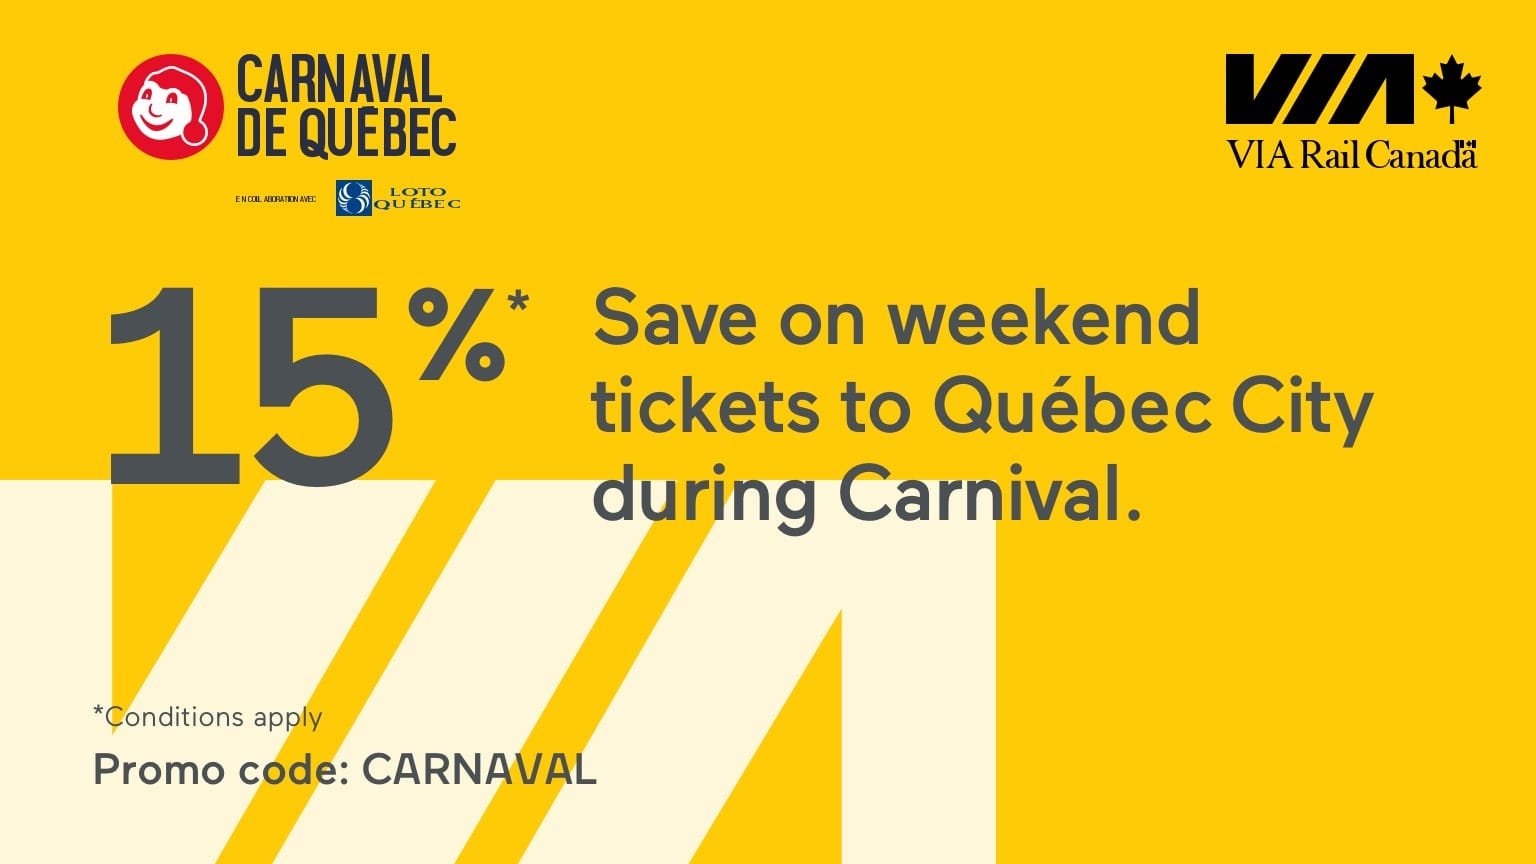 Save 15% on weekend tickets to Québec City during Carnival using code: CARNAVAL